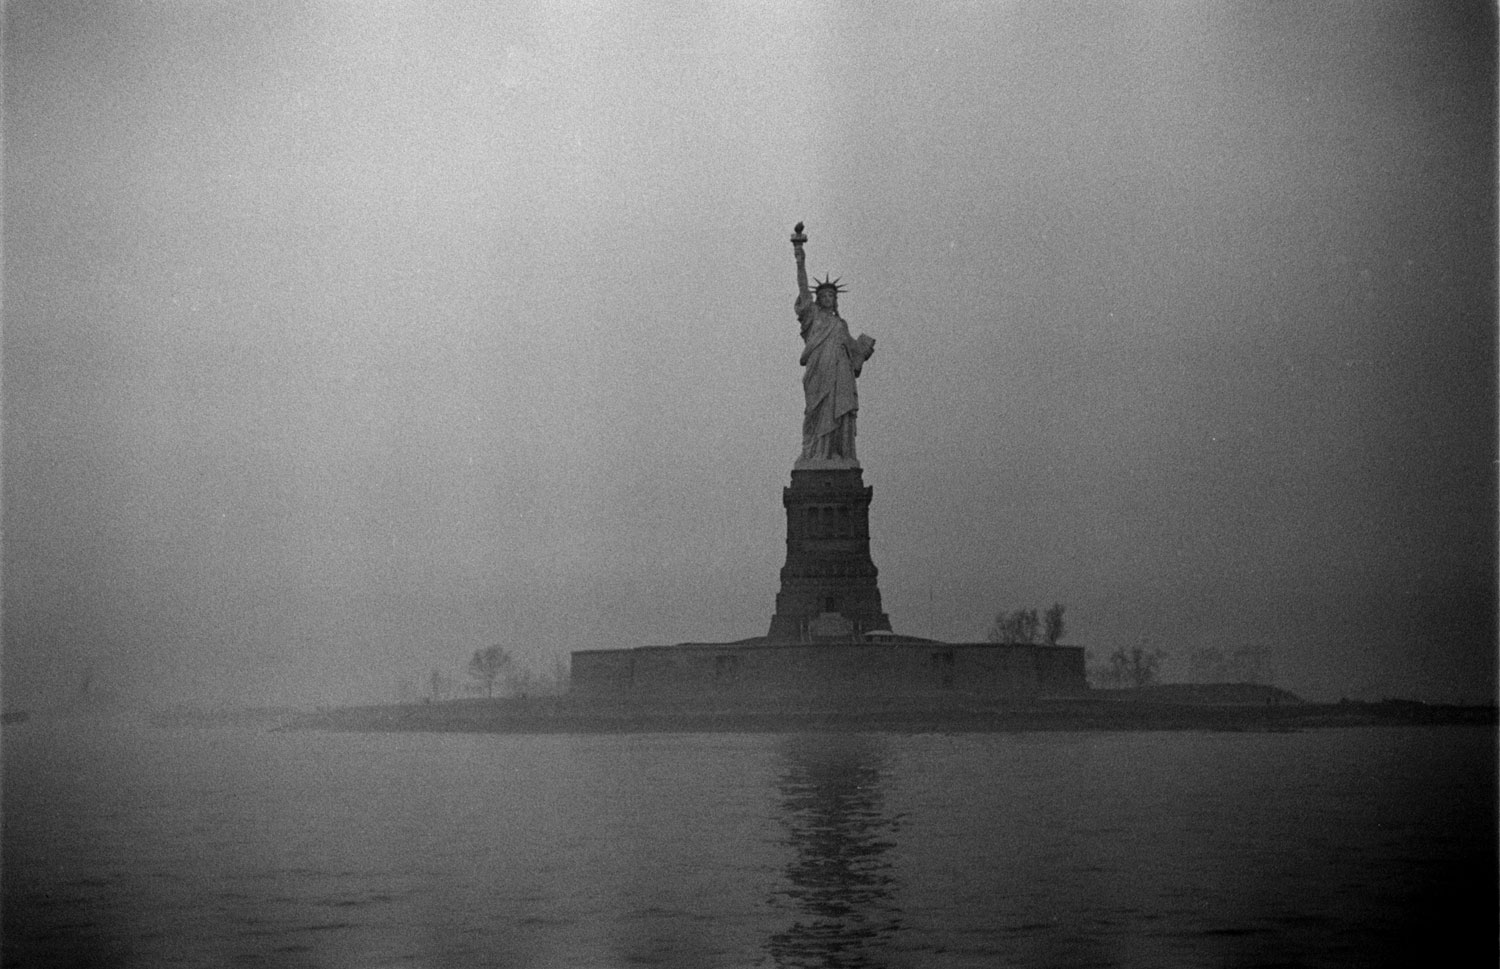 Statue of Liberty, unknown date.